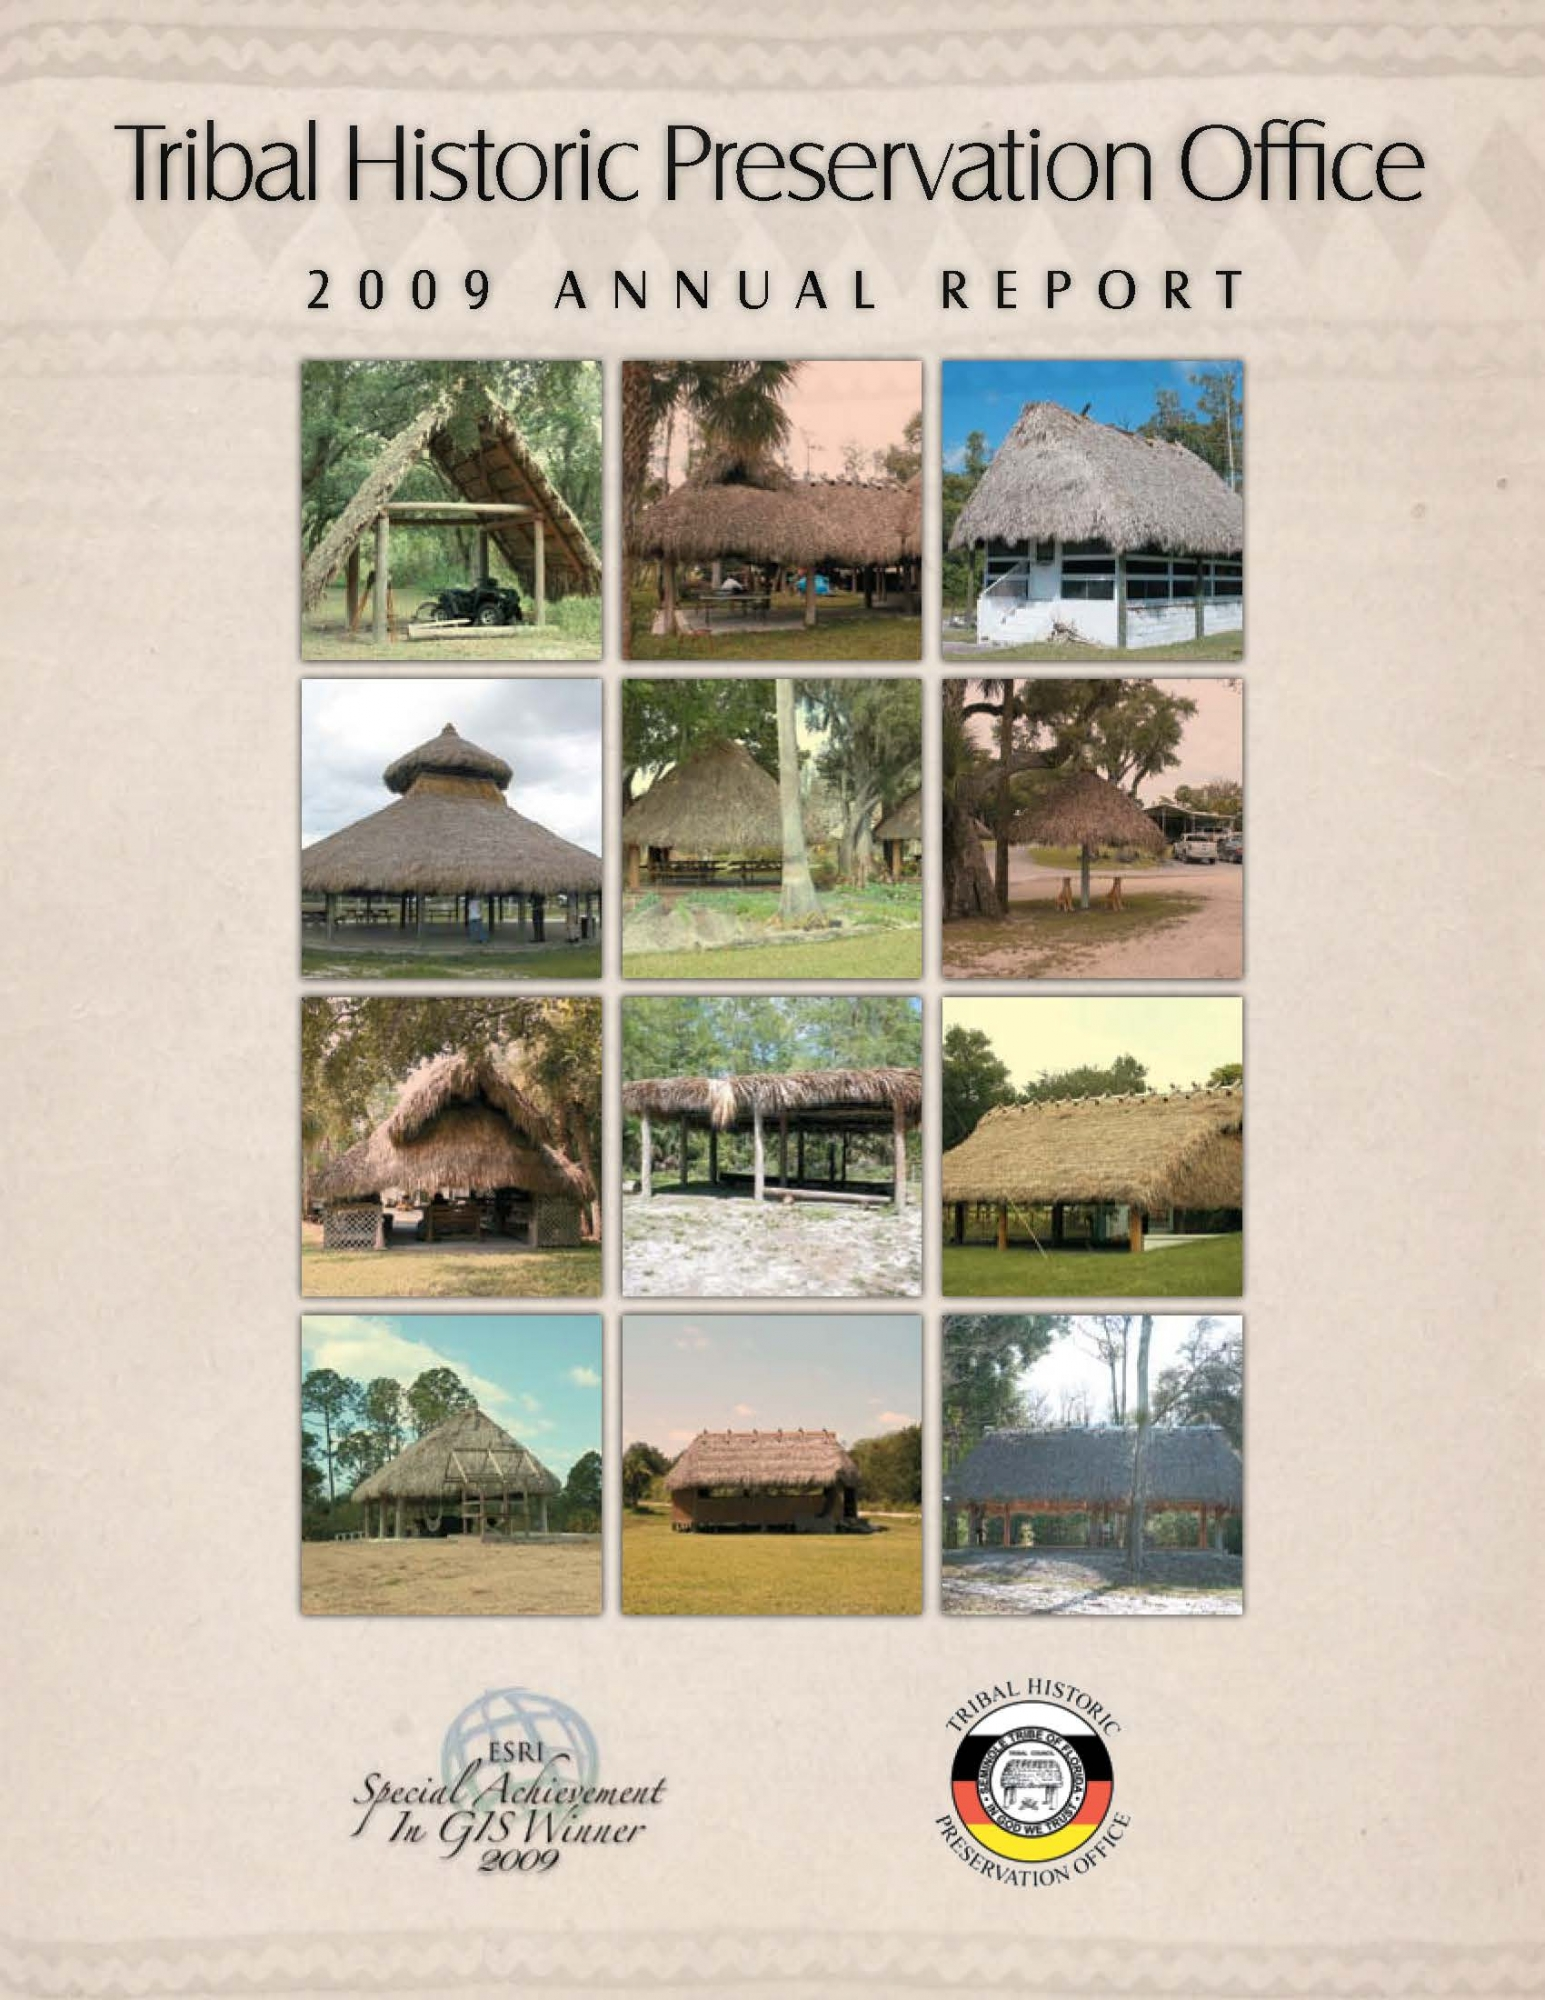 a report on the seminole tribe of florida The seminole tribe of florida and the miccosukee tribe of indians of florida are two of three federally recognized seminole nations, along with the seminole nation of oklahoma there are six seminole tribe of florida reservations across the state of florida.